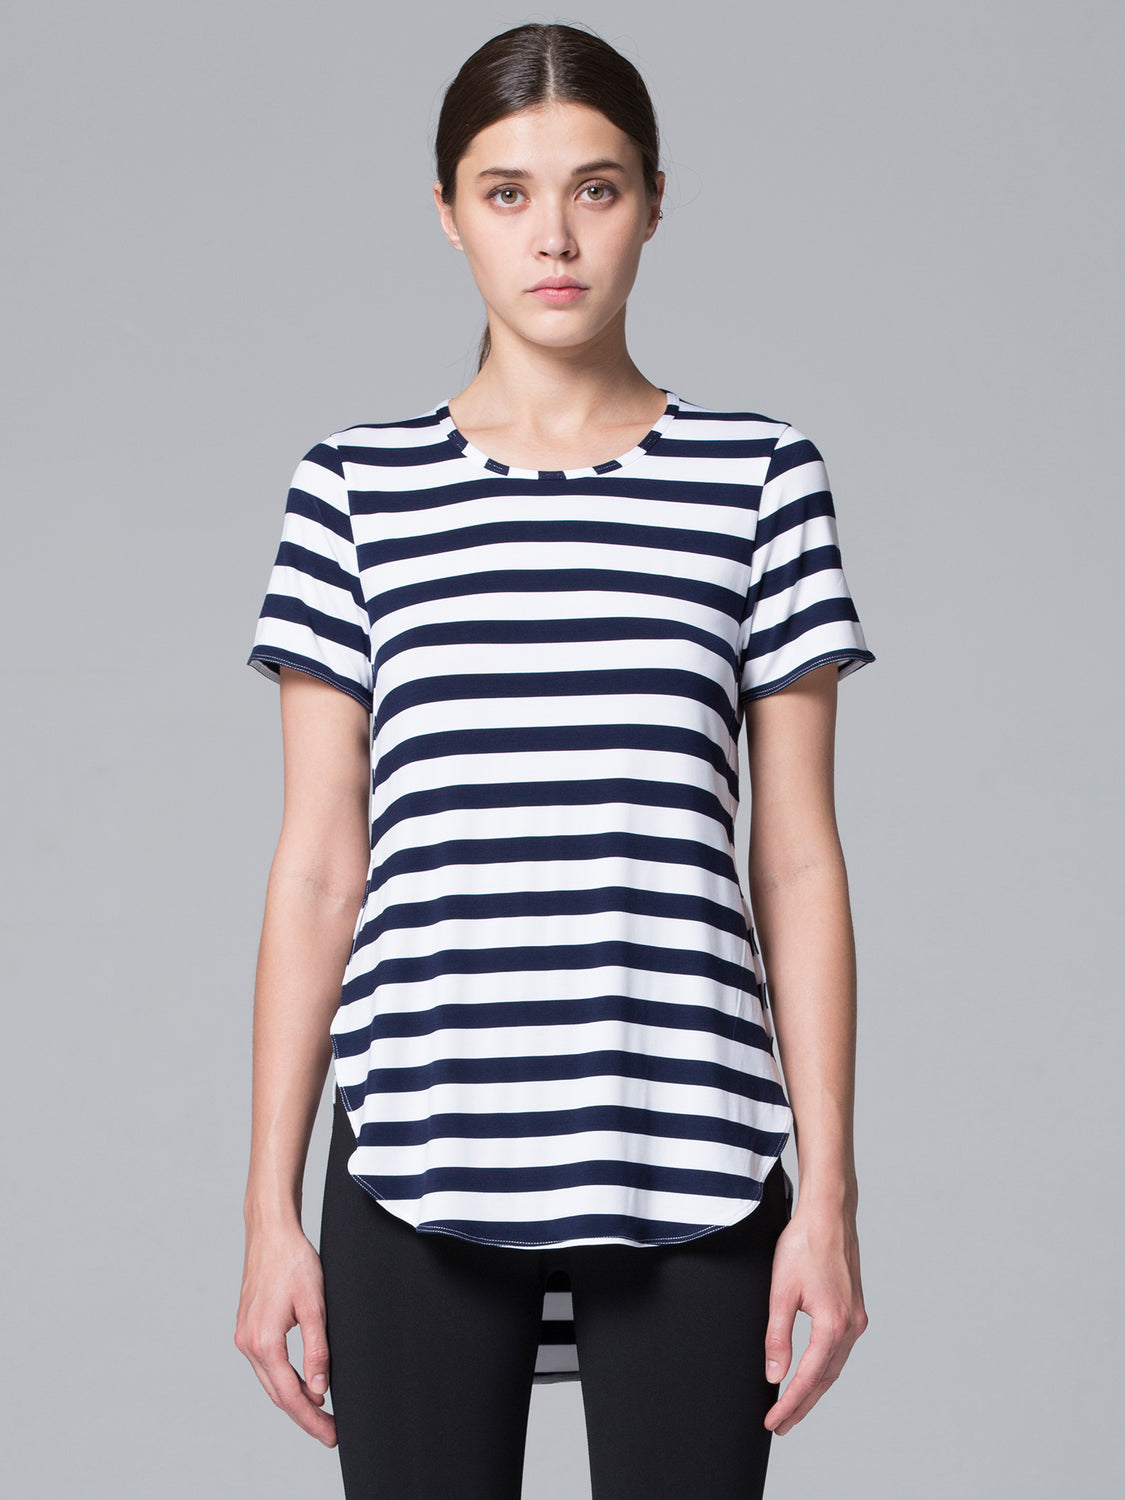 HI LO SPLIT SIDE TEE, NAVY STRIPES